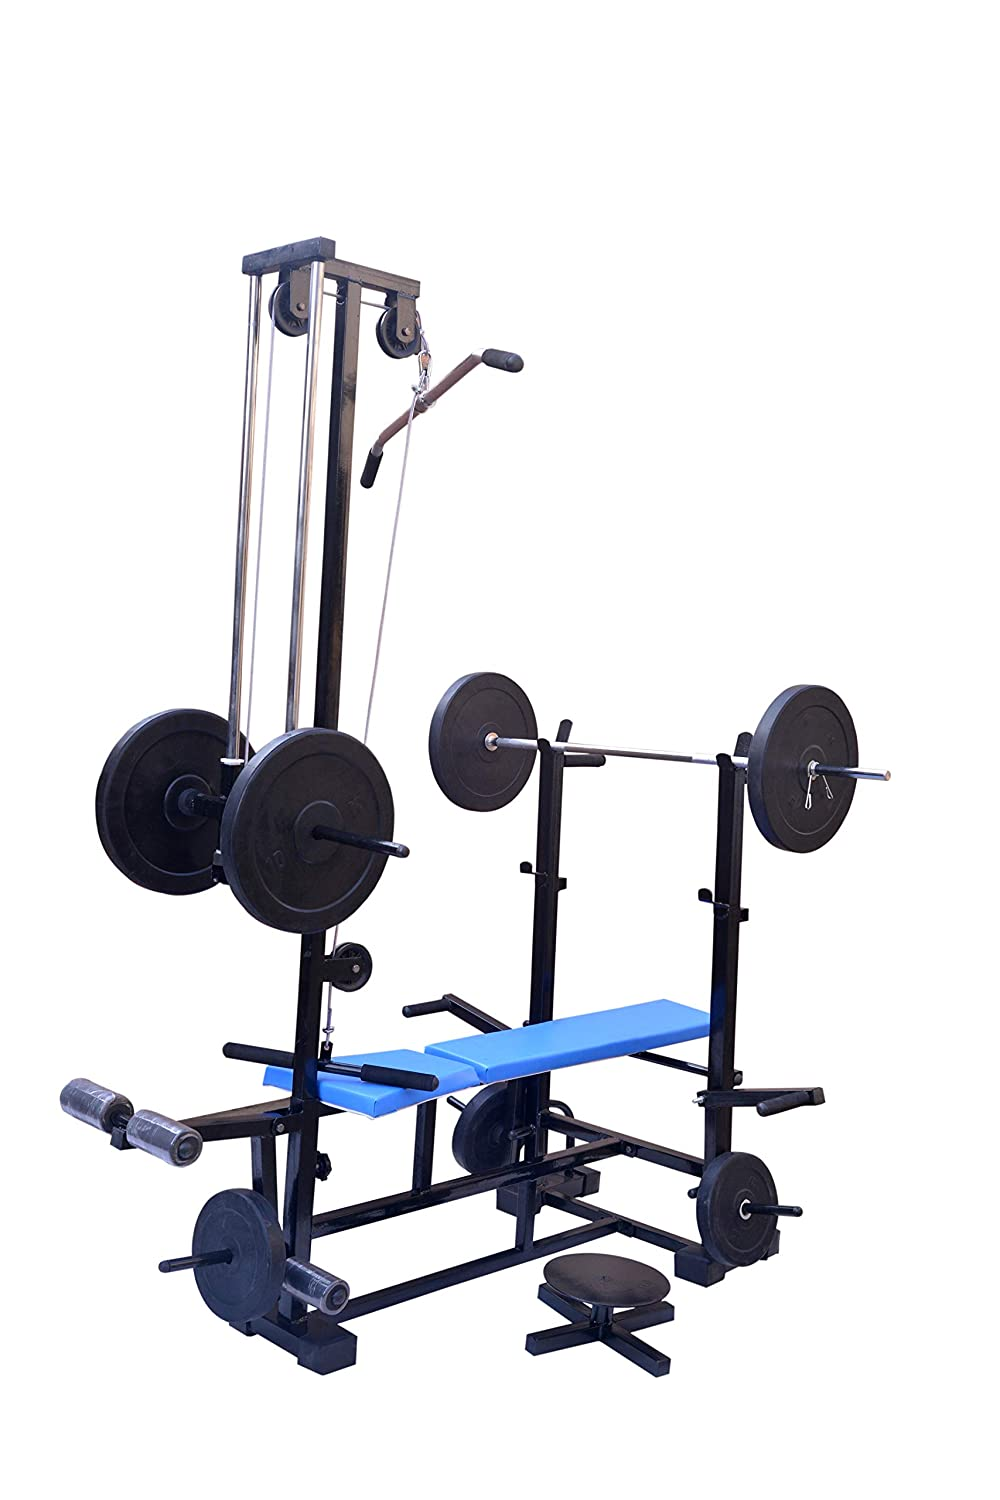 FITNESS HUB Combo 20 in 1 Bench (2x2 Pipe Size Double Supported Bench) for Exercise.